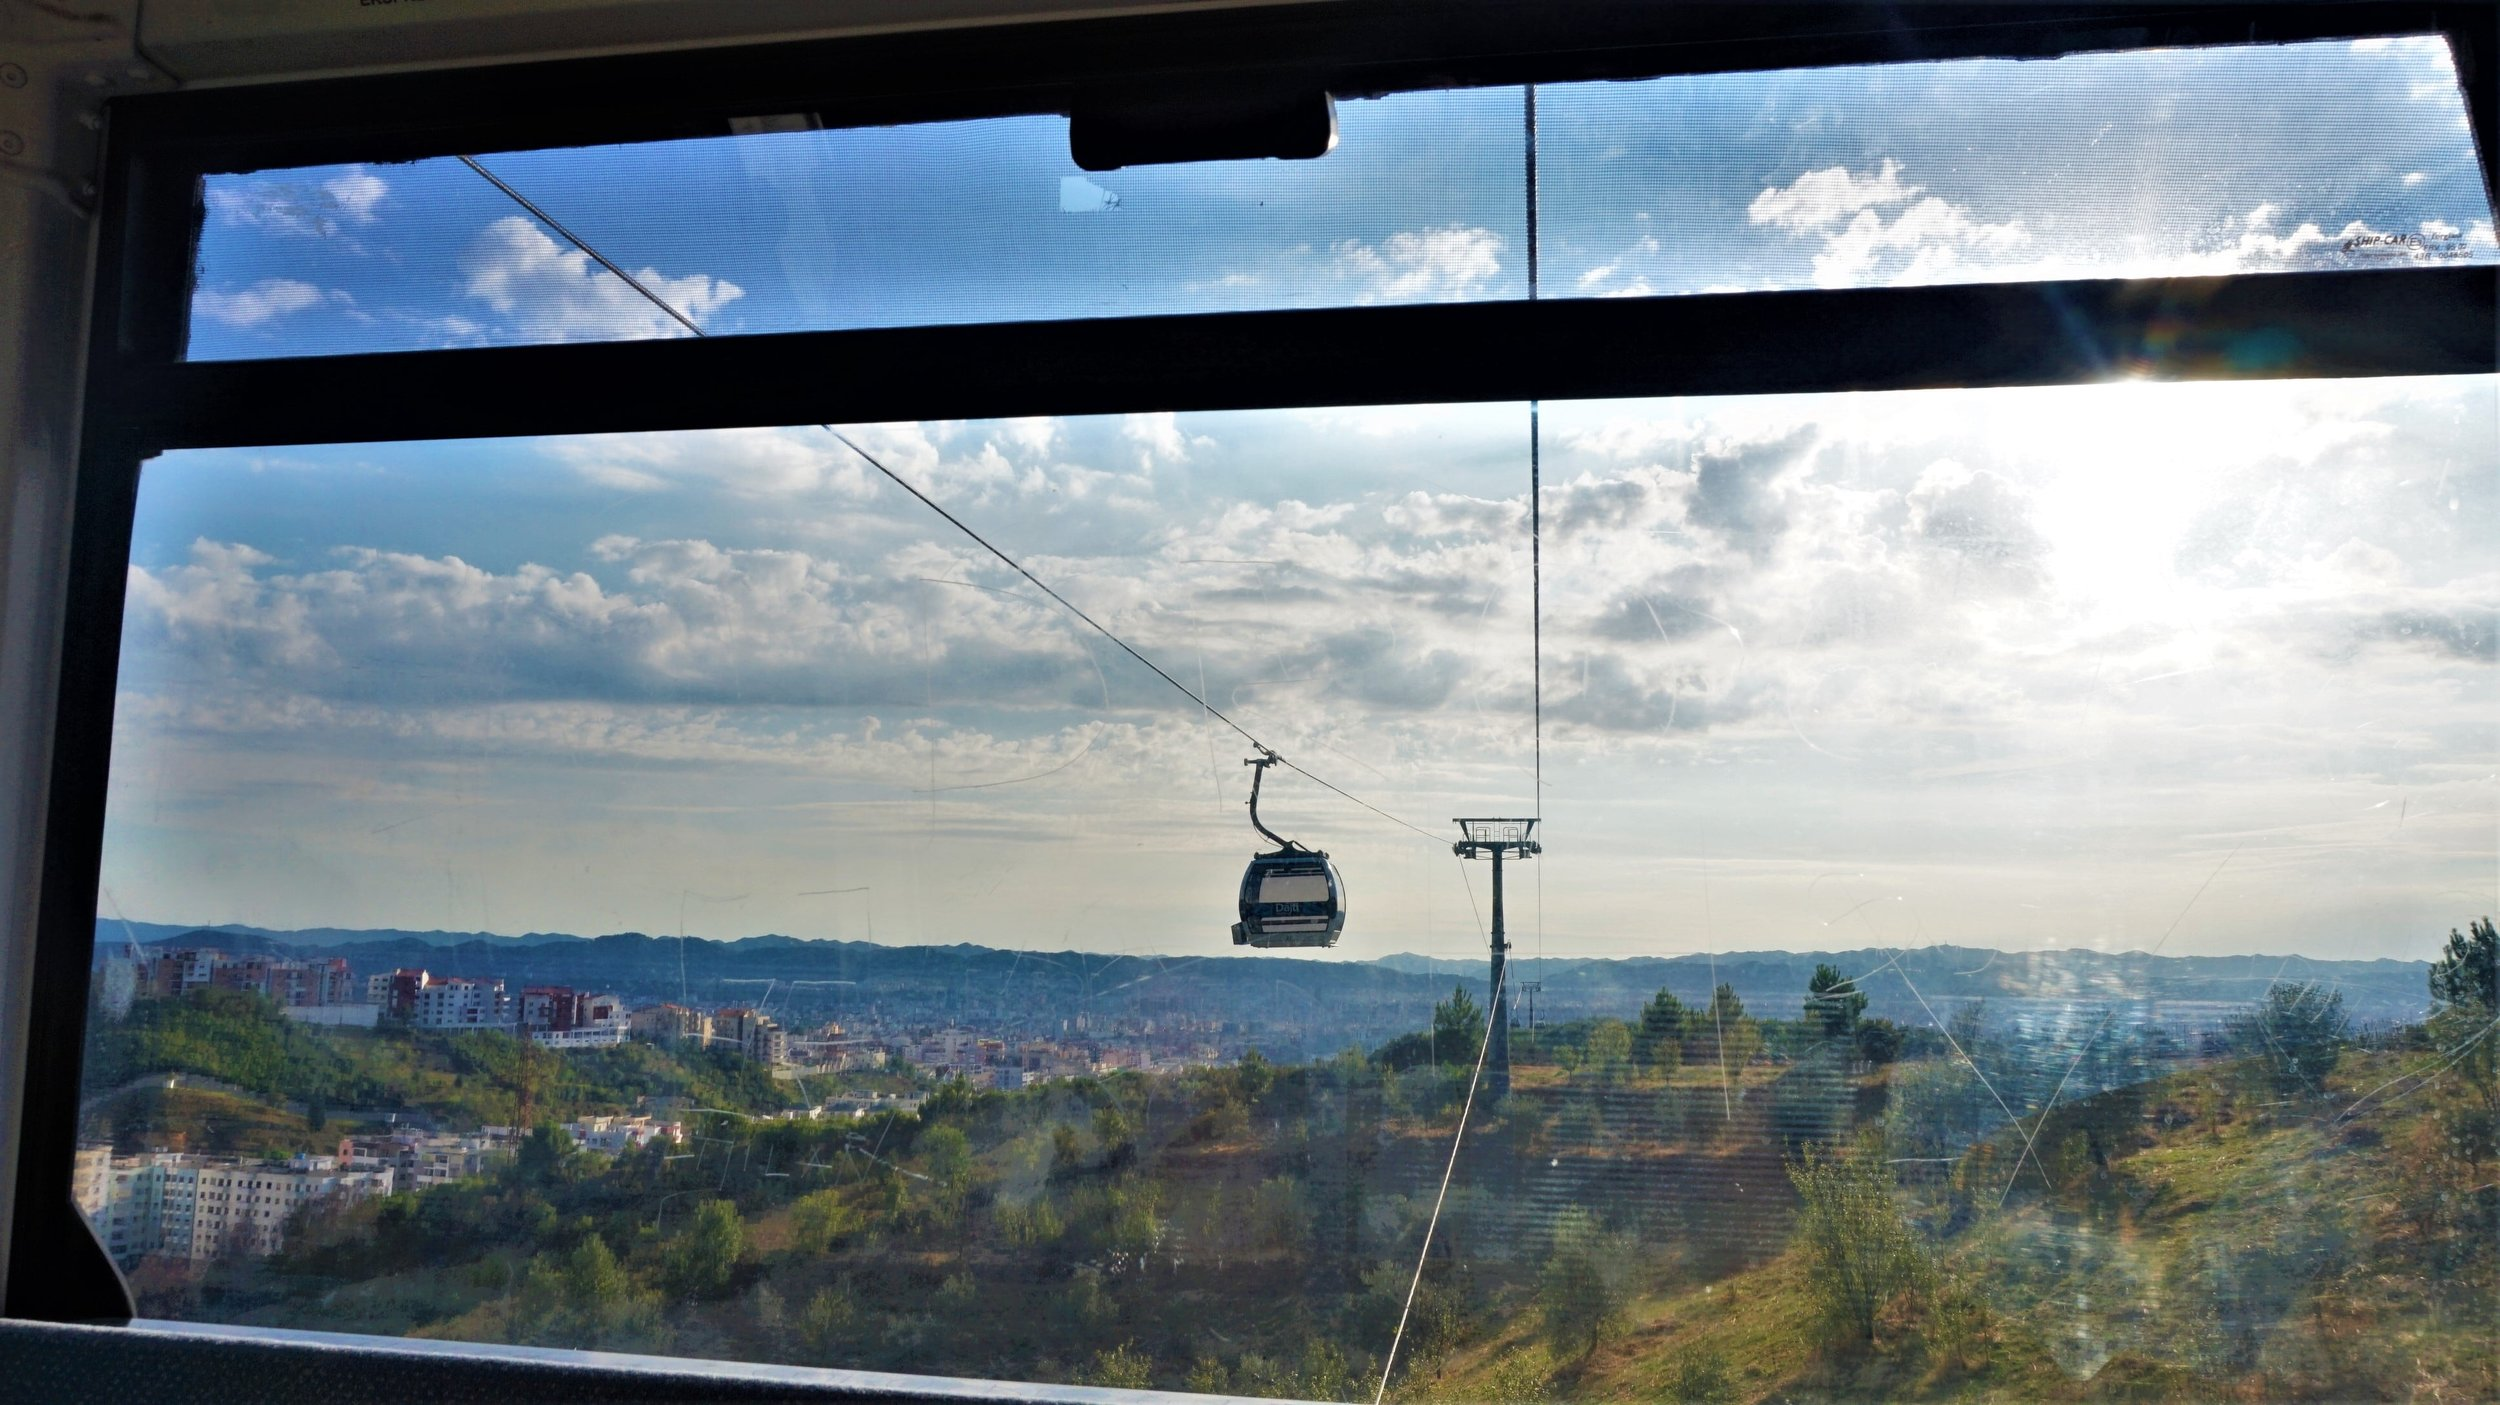 Taking the cable car up mount Dajti is a great activity for a sunny day in Tirana, Albania.